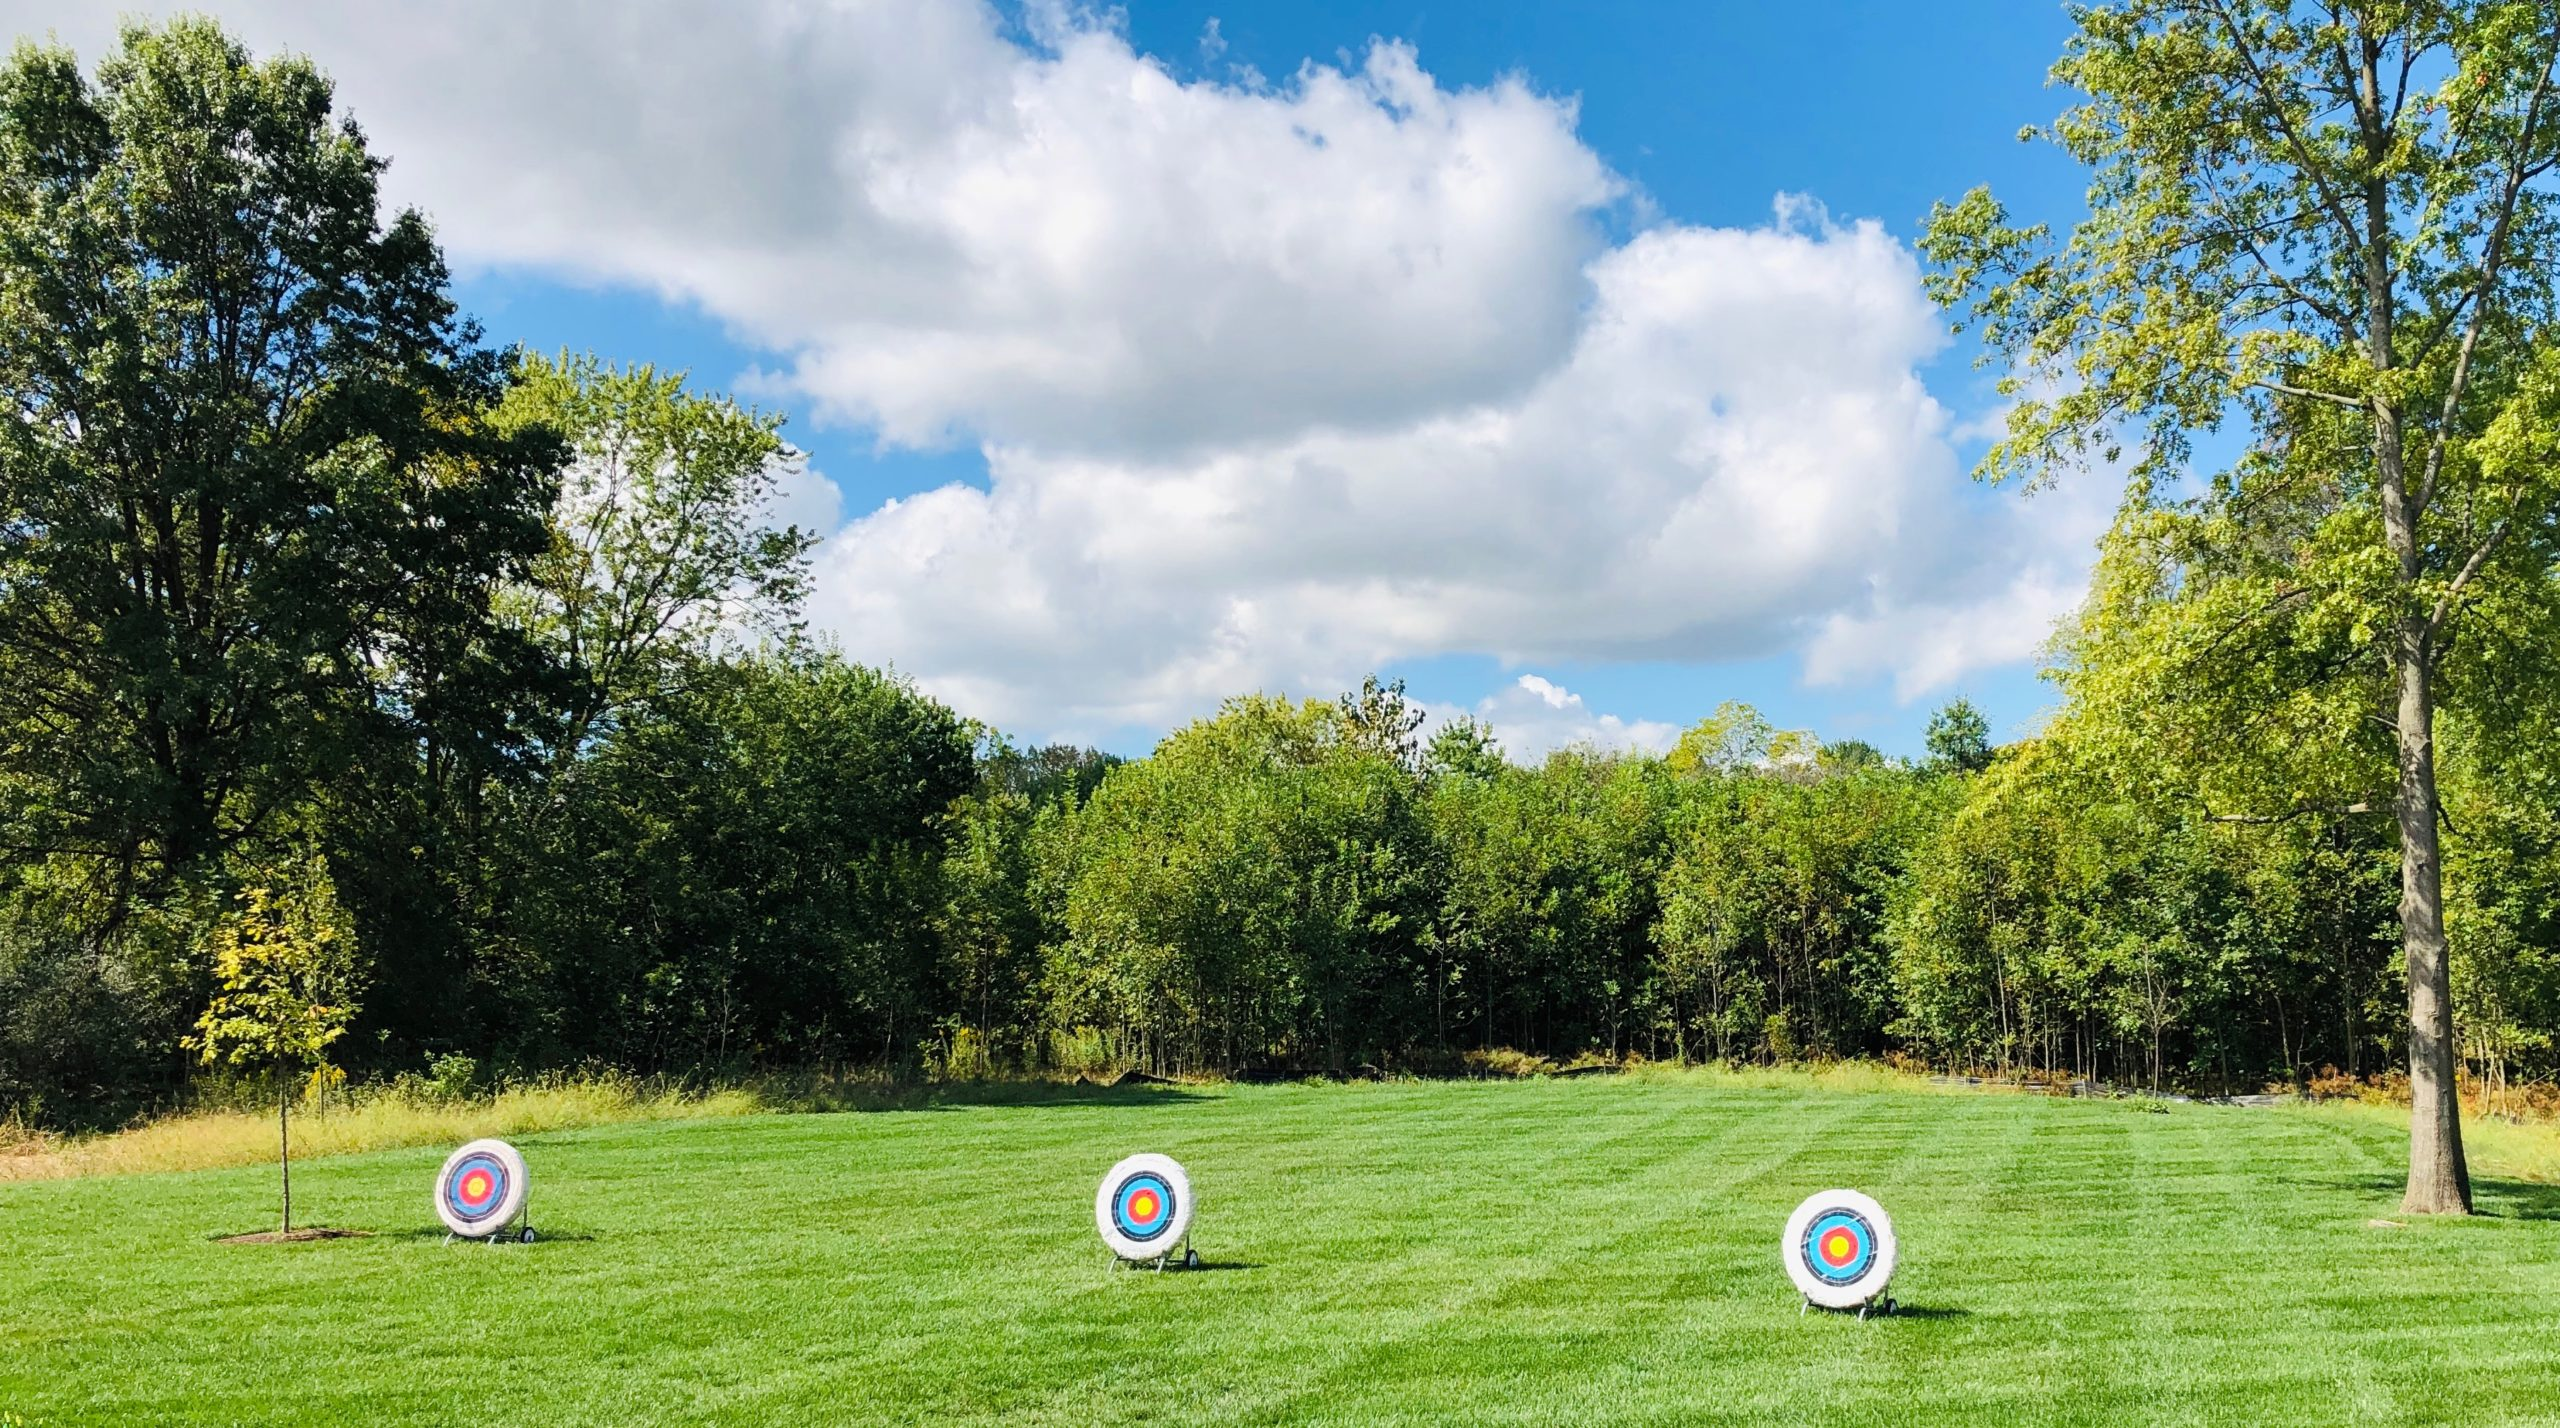 Targets in a field